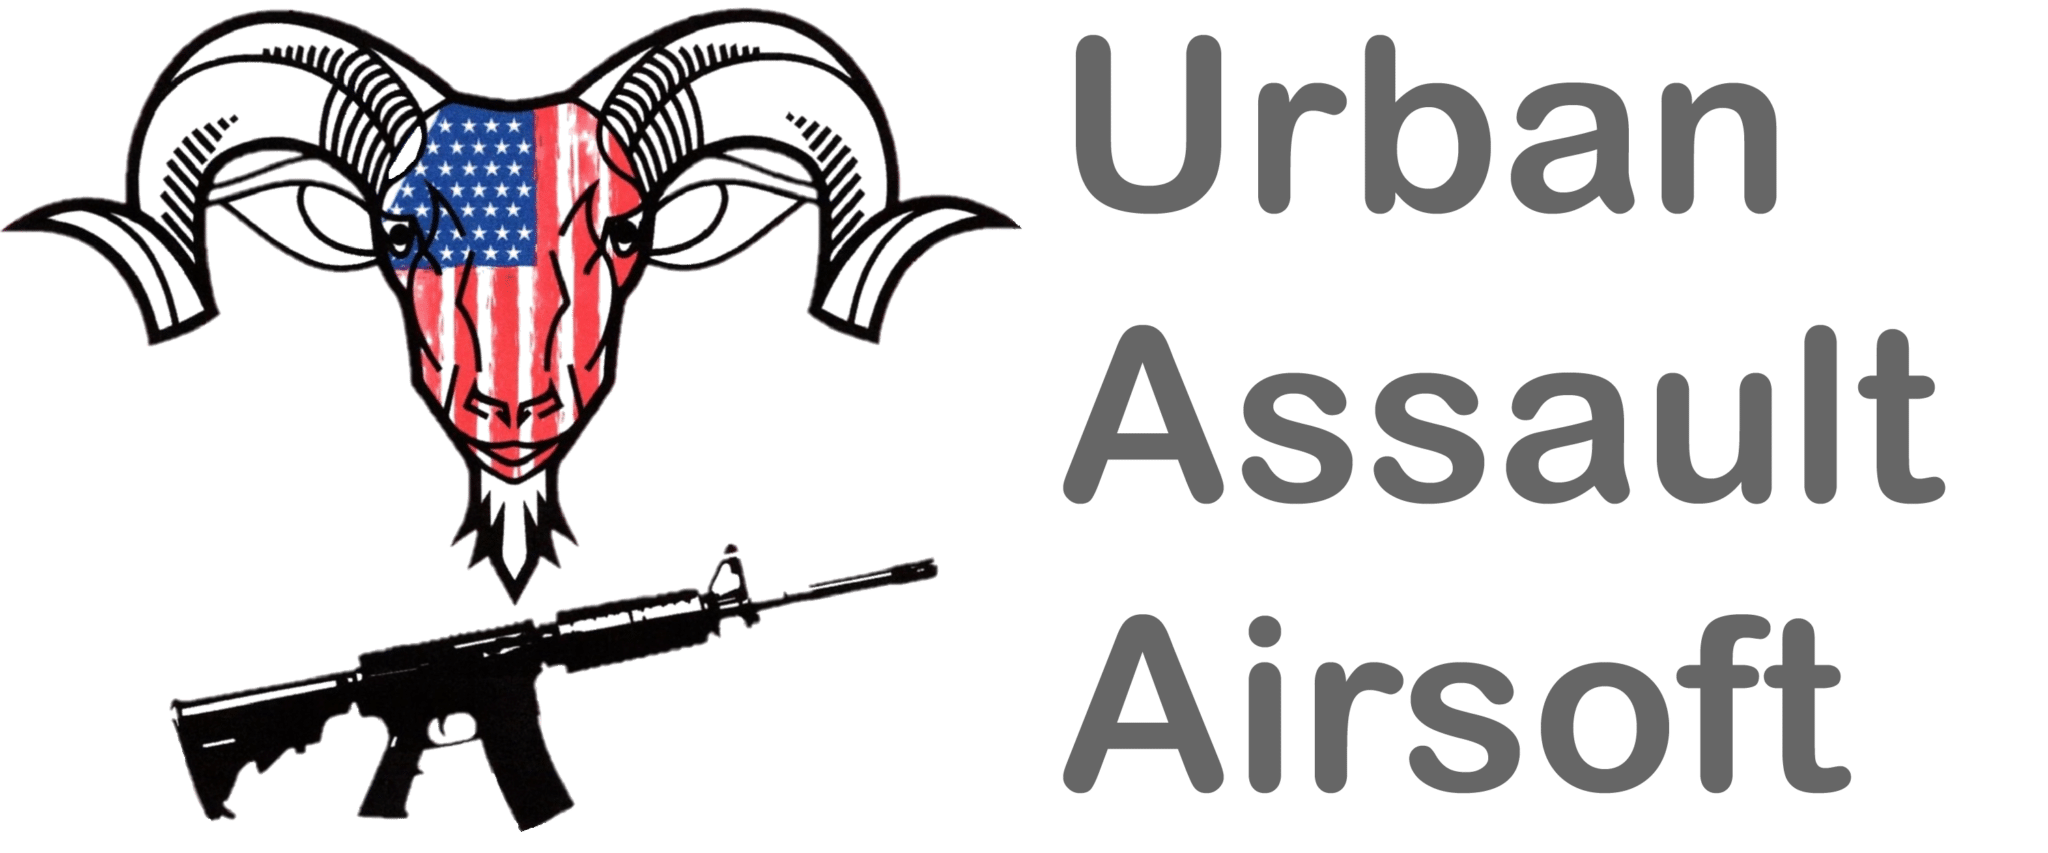 Urban Assault Airsoft